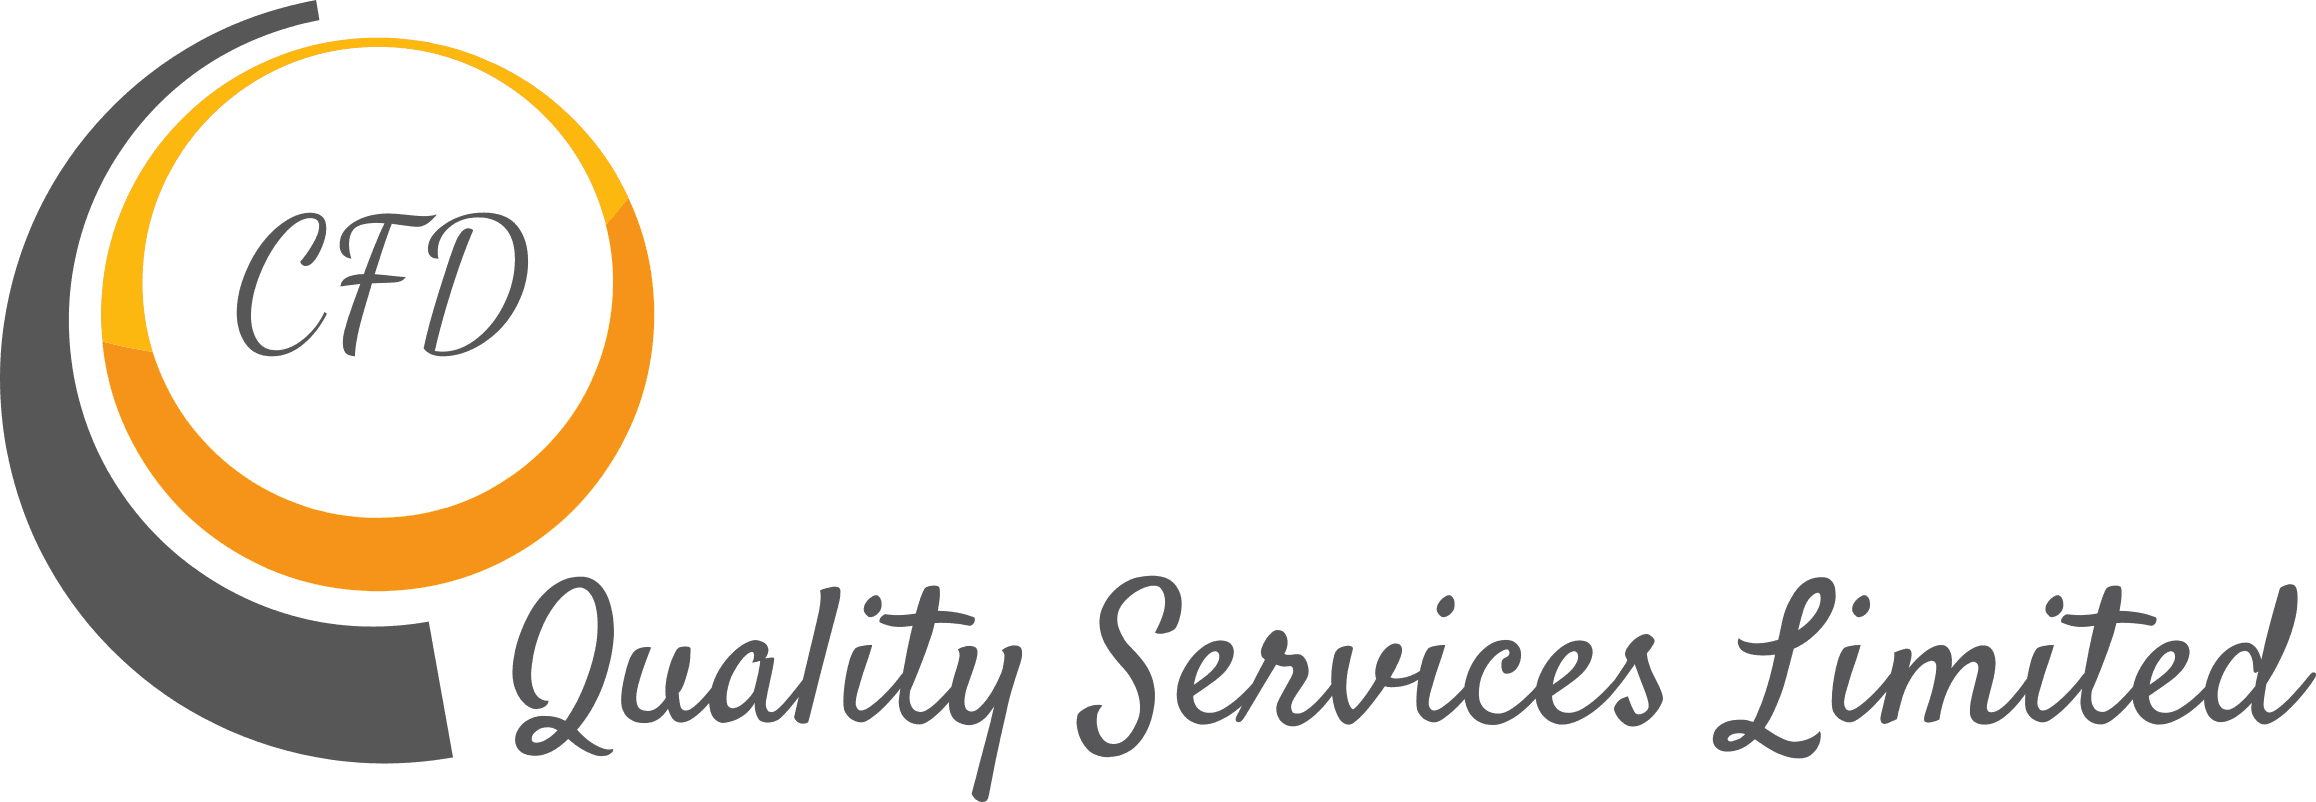 CFD Quality Services